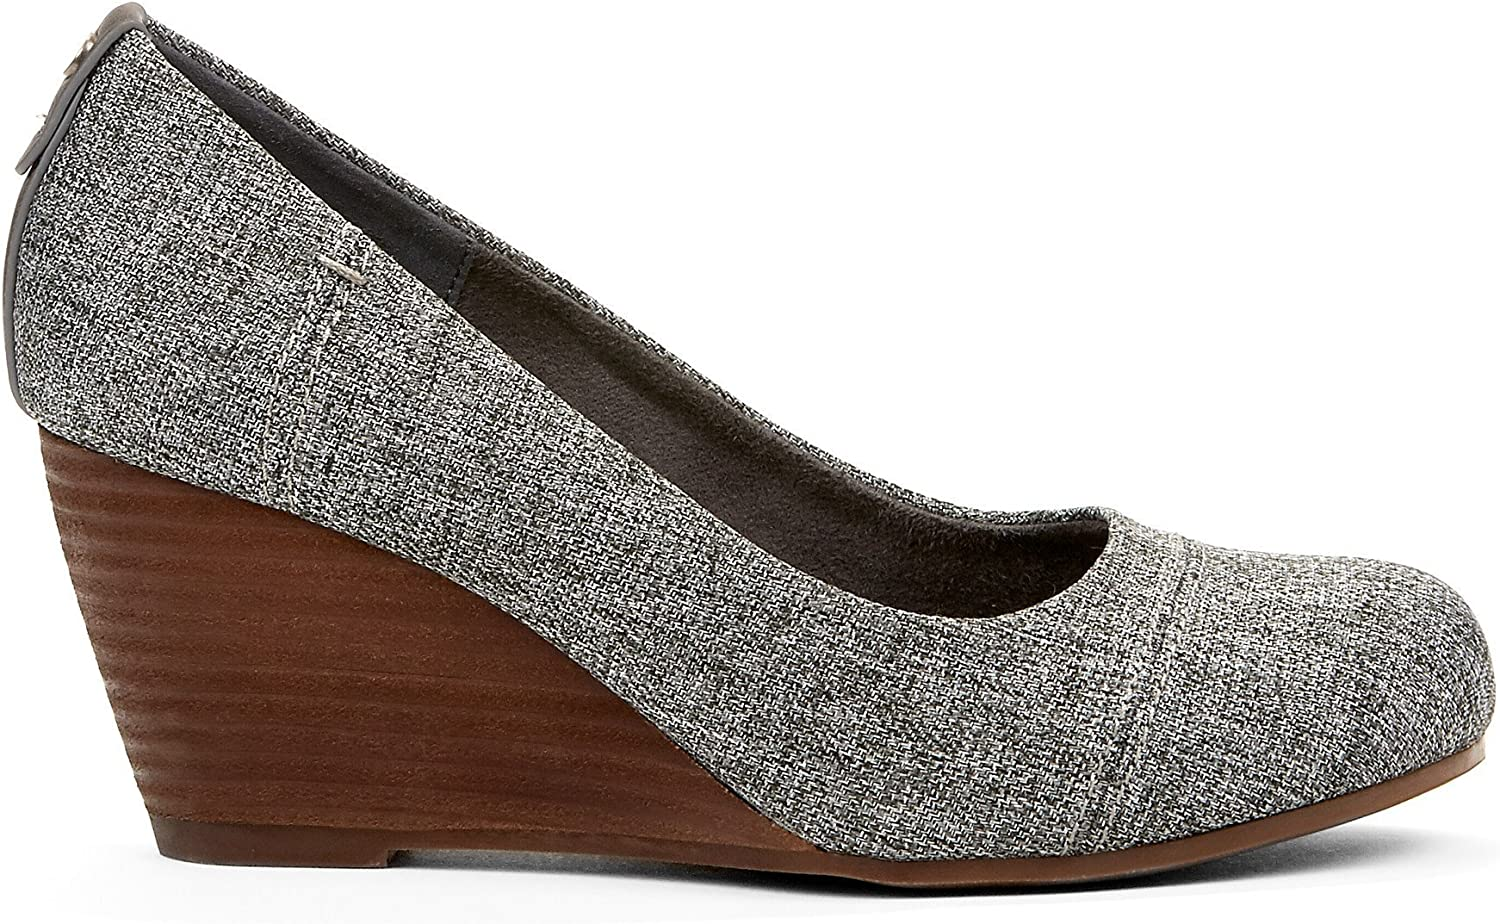 Heavenly Womens Dress Wedge shoes - Casual & Comfortable - Perfect for Fall Summer Spring - Trendy Fashion Ankle High Made from Fabric & Memory Foam with Closed Round Toe